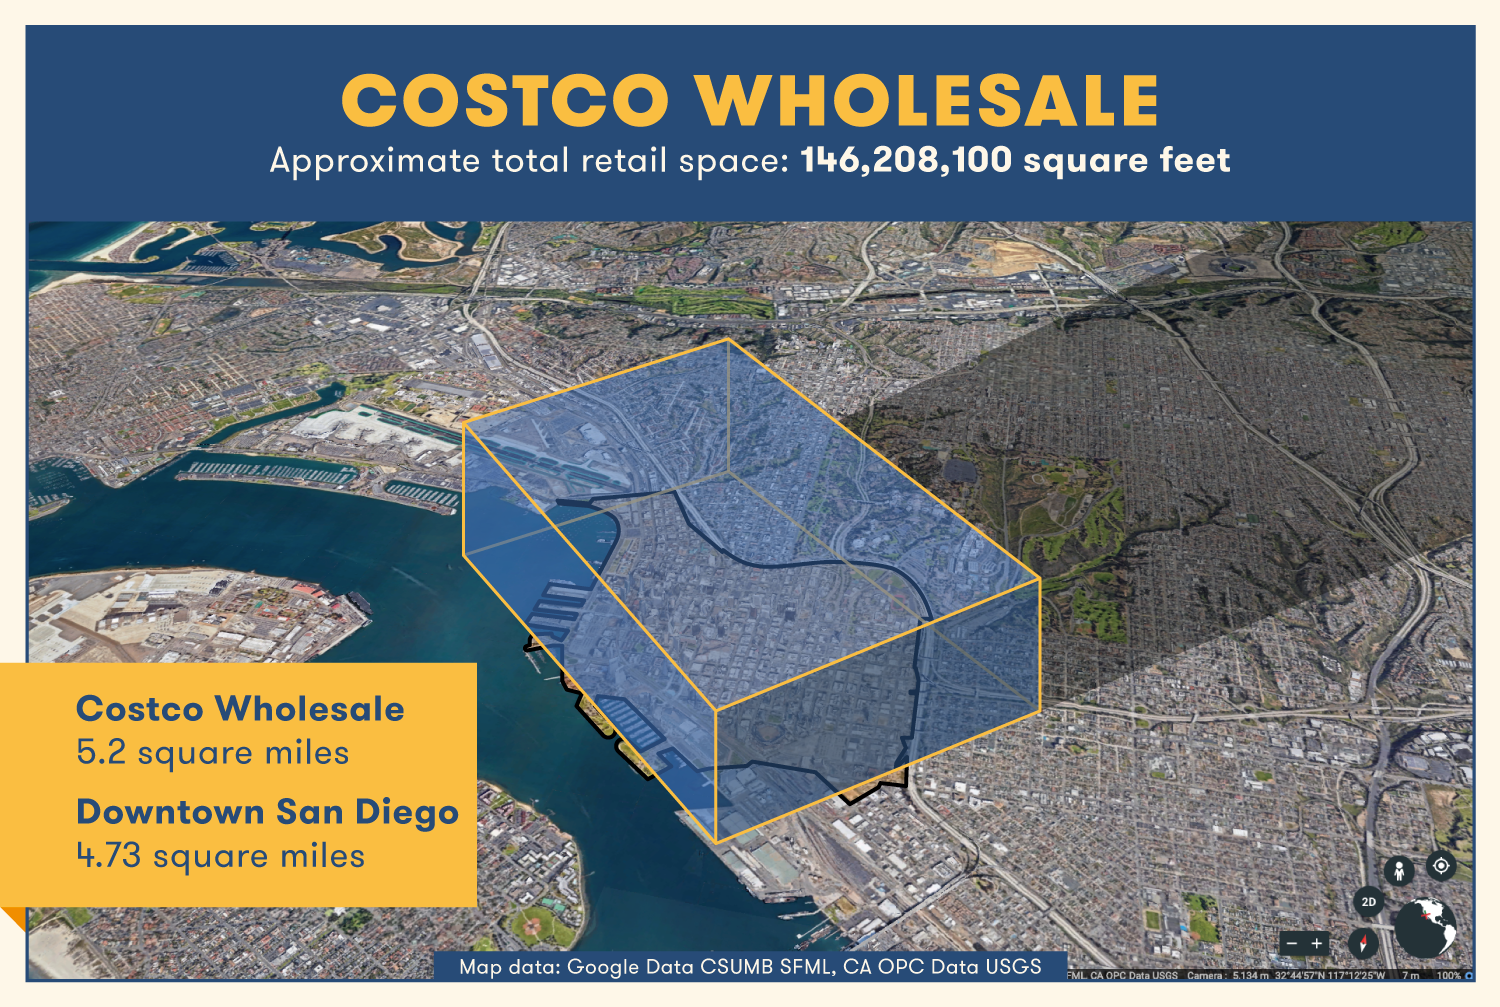 Costco's total retail space would roughly cover the size of downtown San Diego at 5.2 square miles.